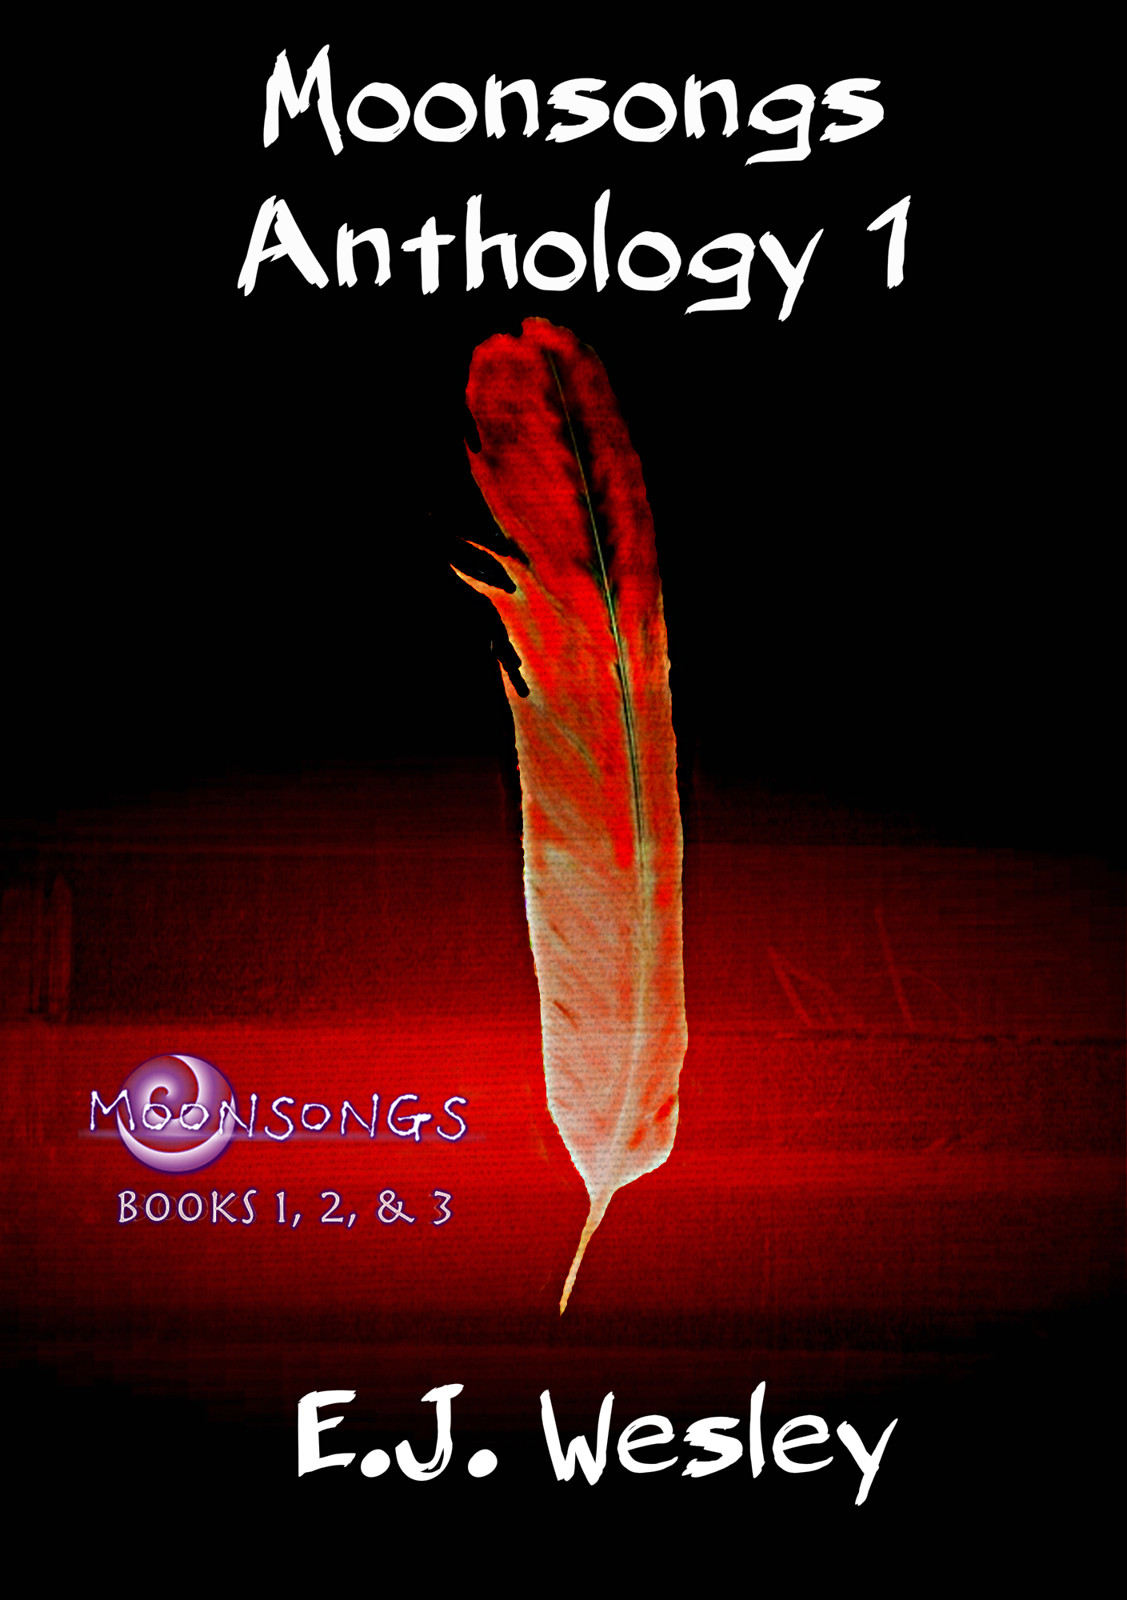 Moonsongs Anthology 1